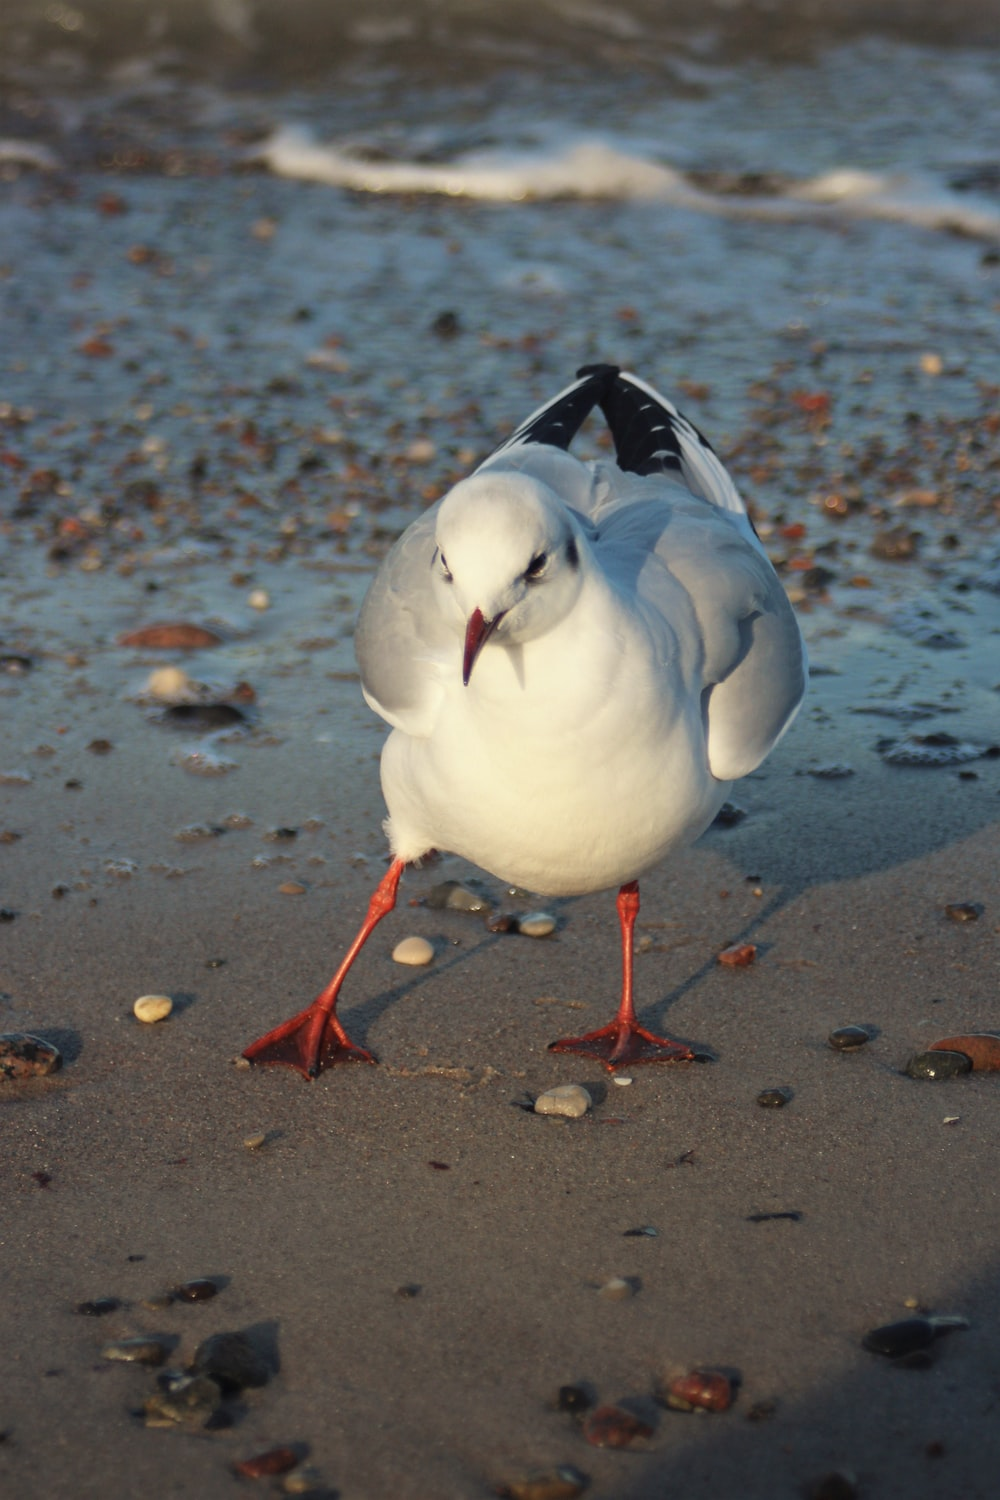 white and black bird on brown sand during daytime